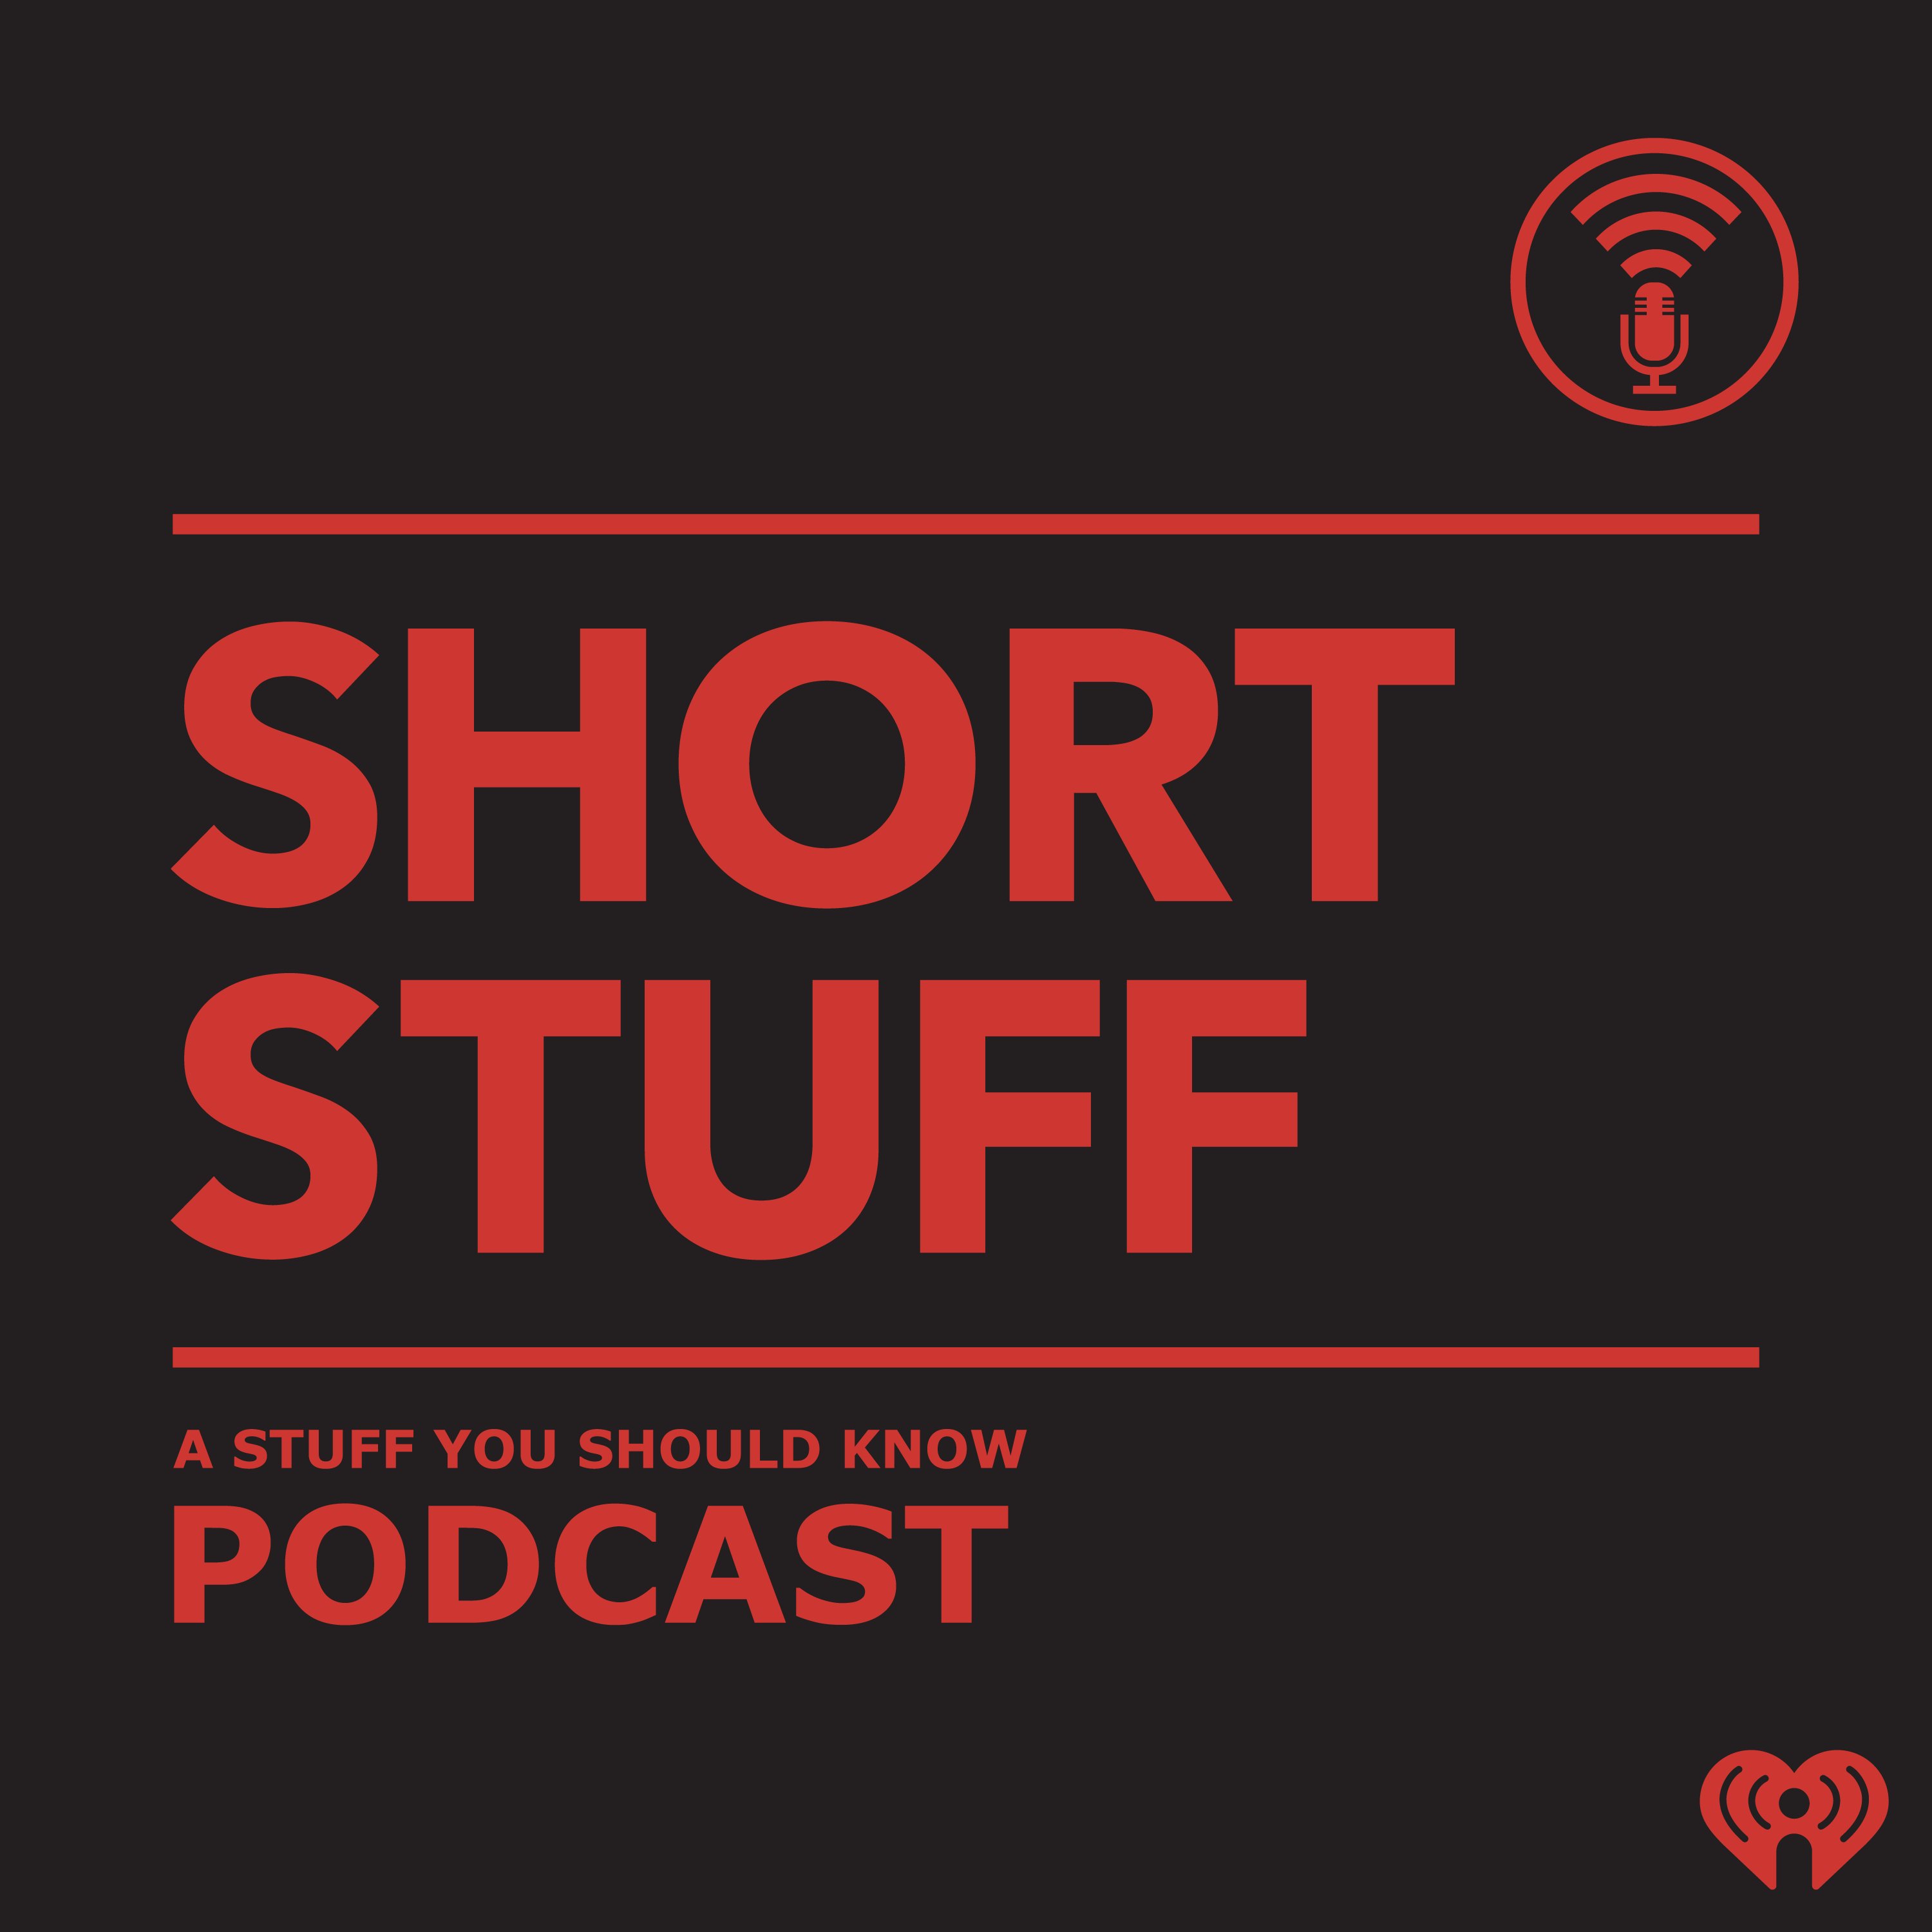 Short Stuff: The Man Who Didn't Eat for a Year